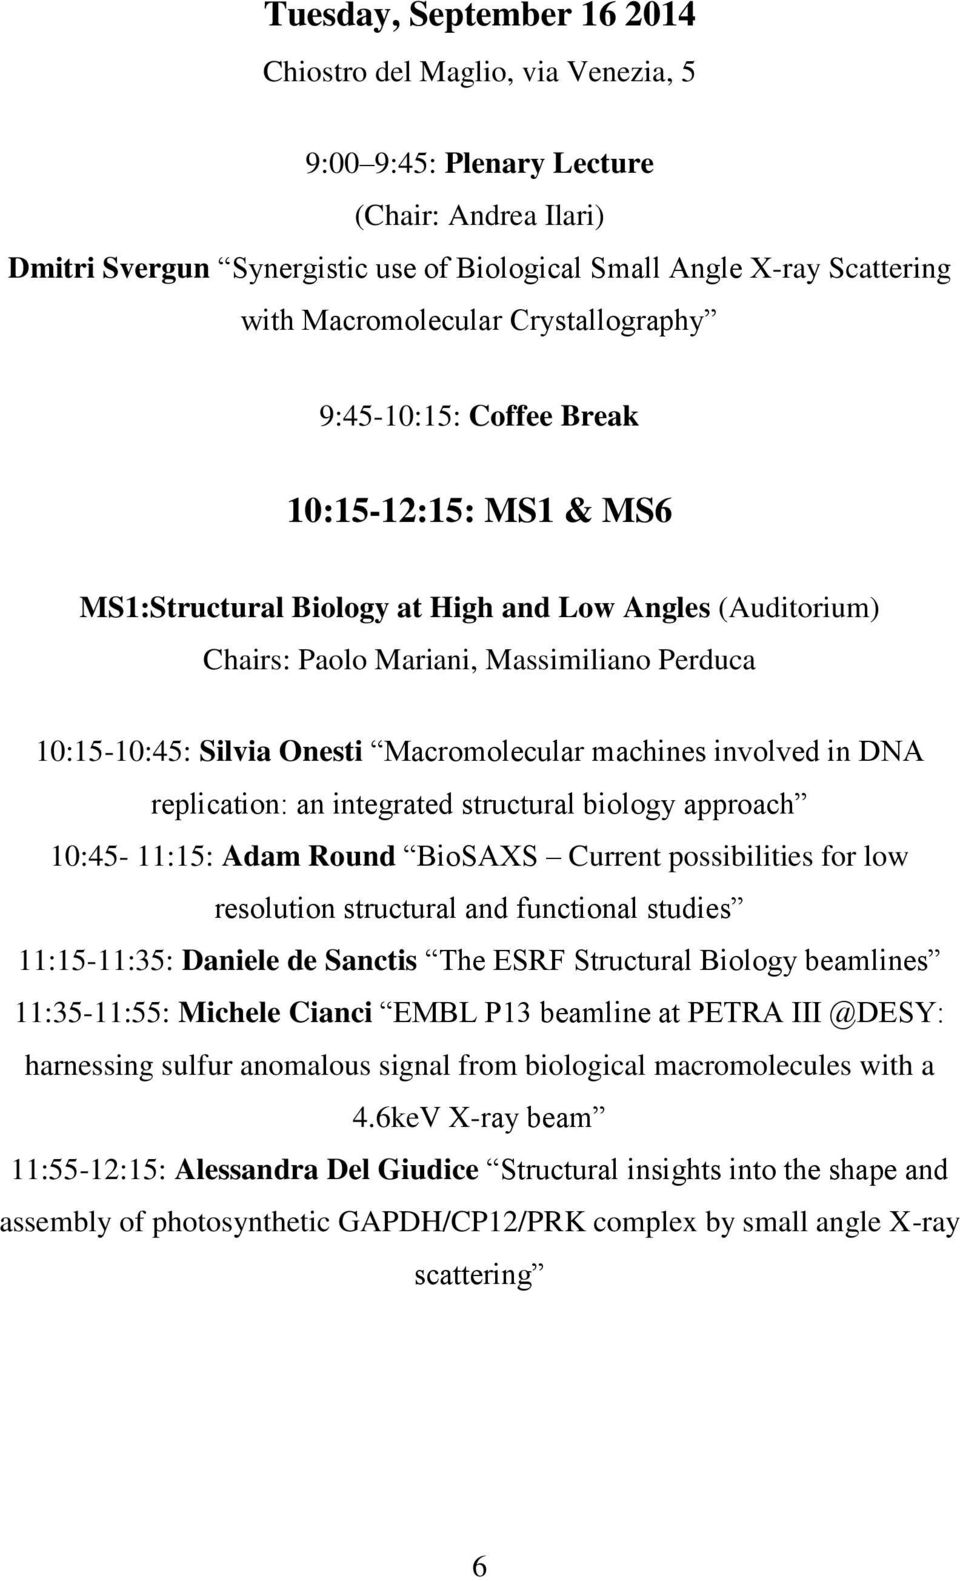 Silvia Onesti Macromolecular machines involved in DNA replication: an integrated structural biology approach 10:45-11:15: Adam Round BioSAXS Current possibilities for low resolution structural and